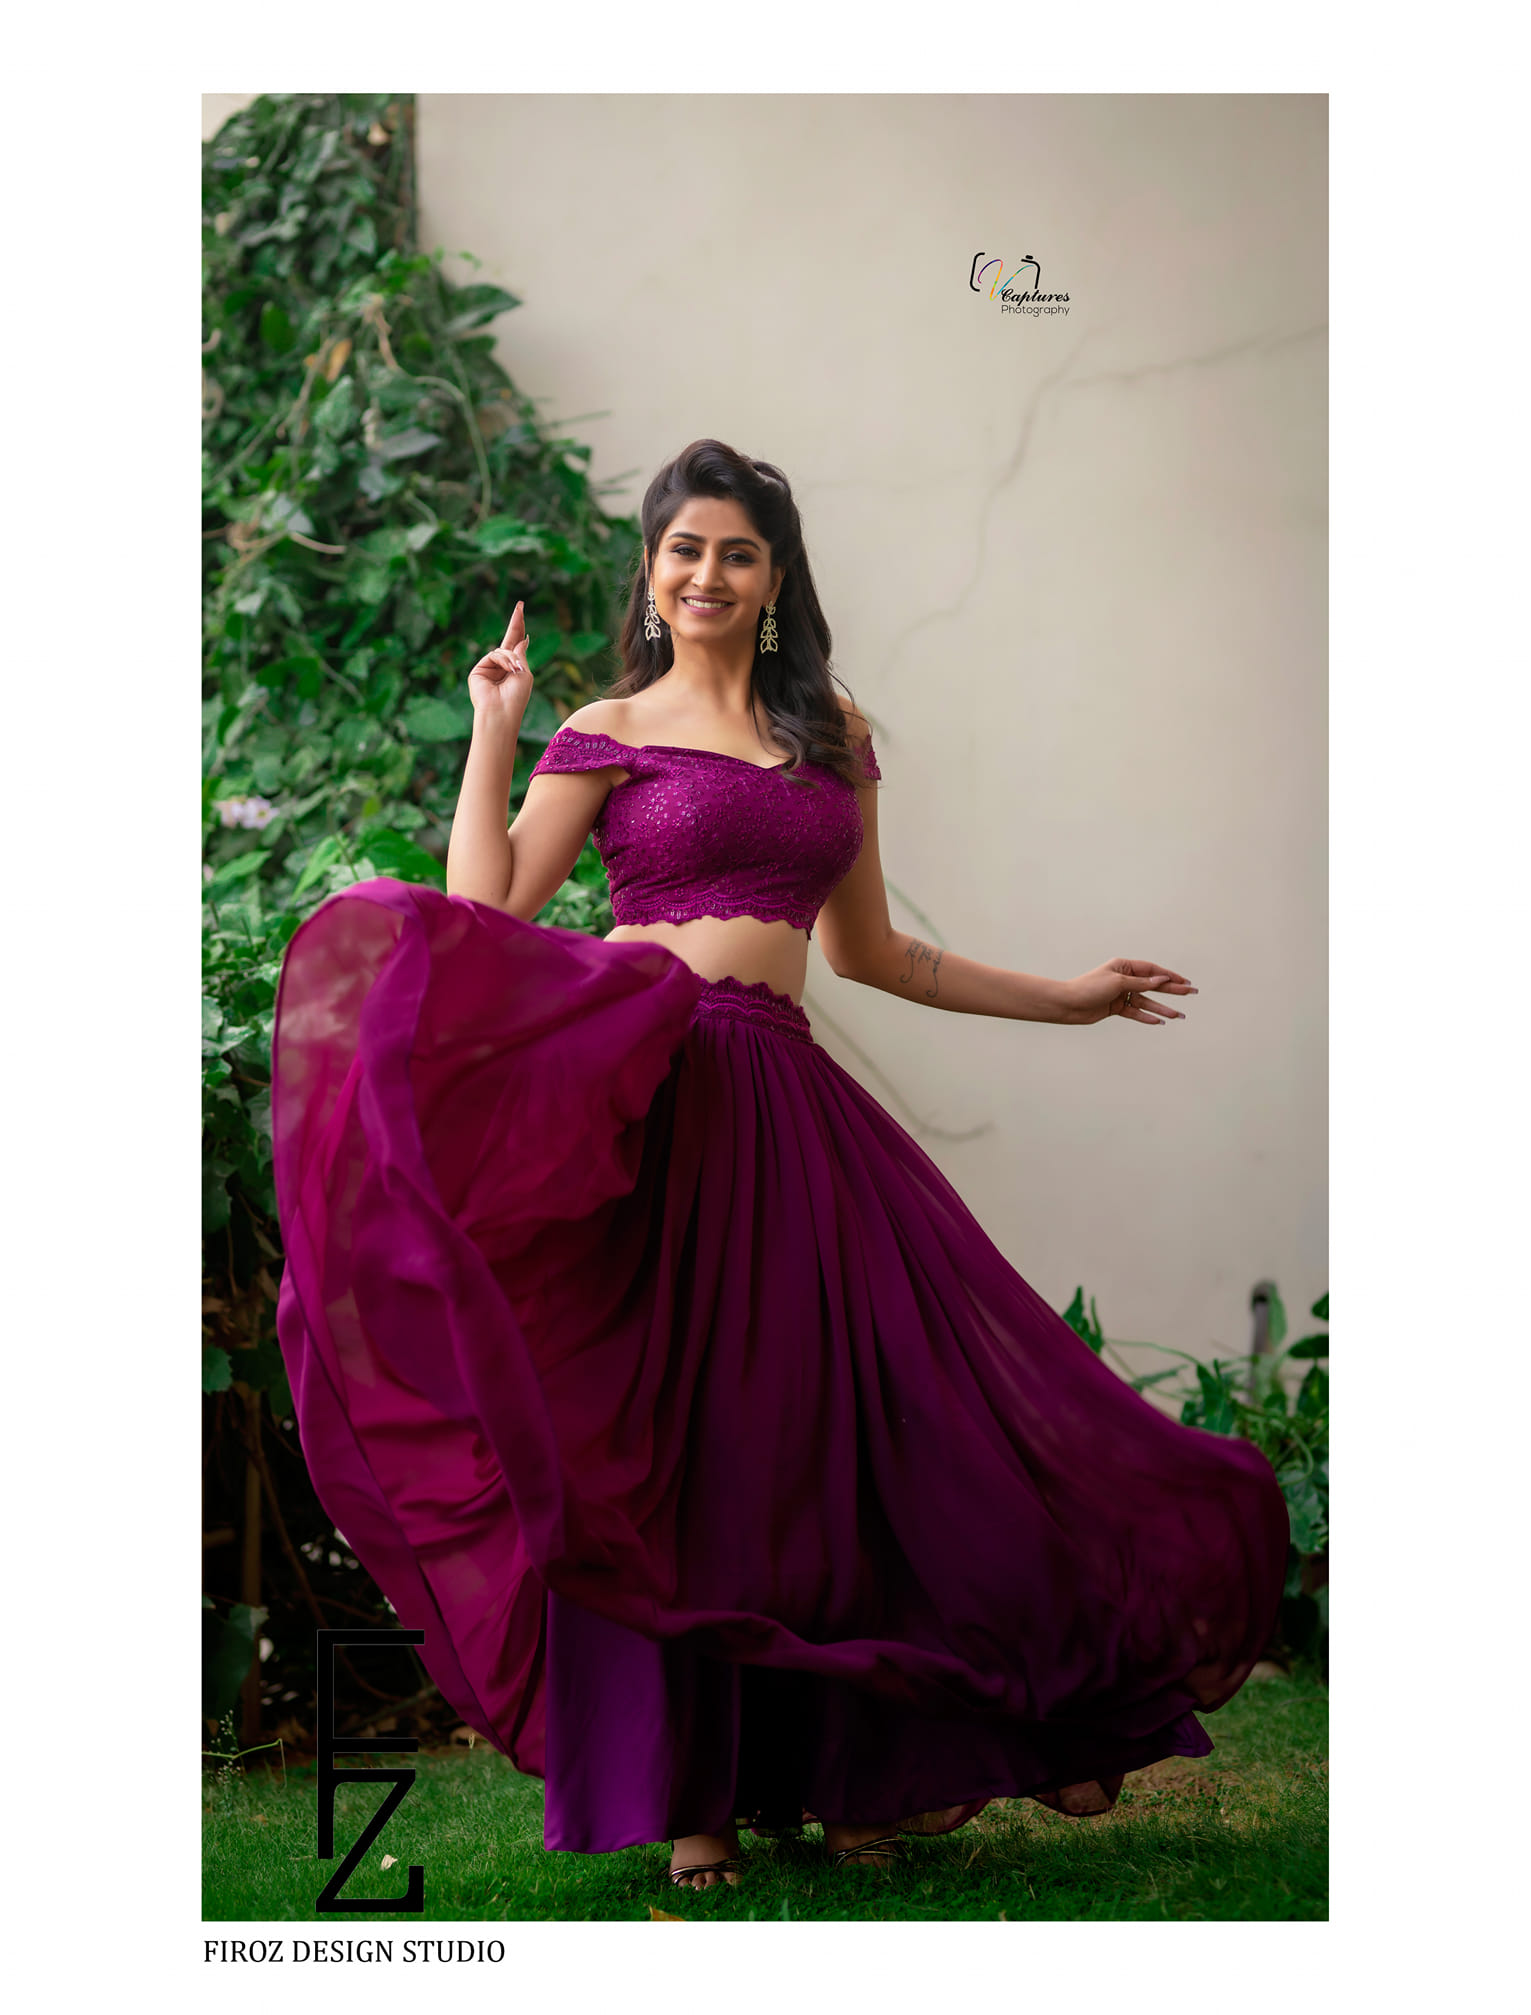 Glamorous Goddess Varshini looked beautiful in  Firoz Design Studio outfit. Varshini in purple color skirt and off shoulder top. 2021-02-22